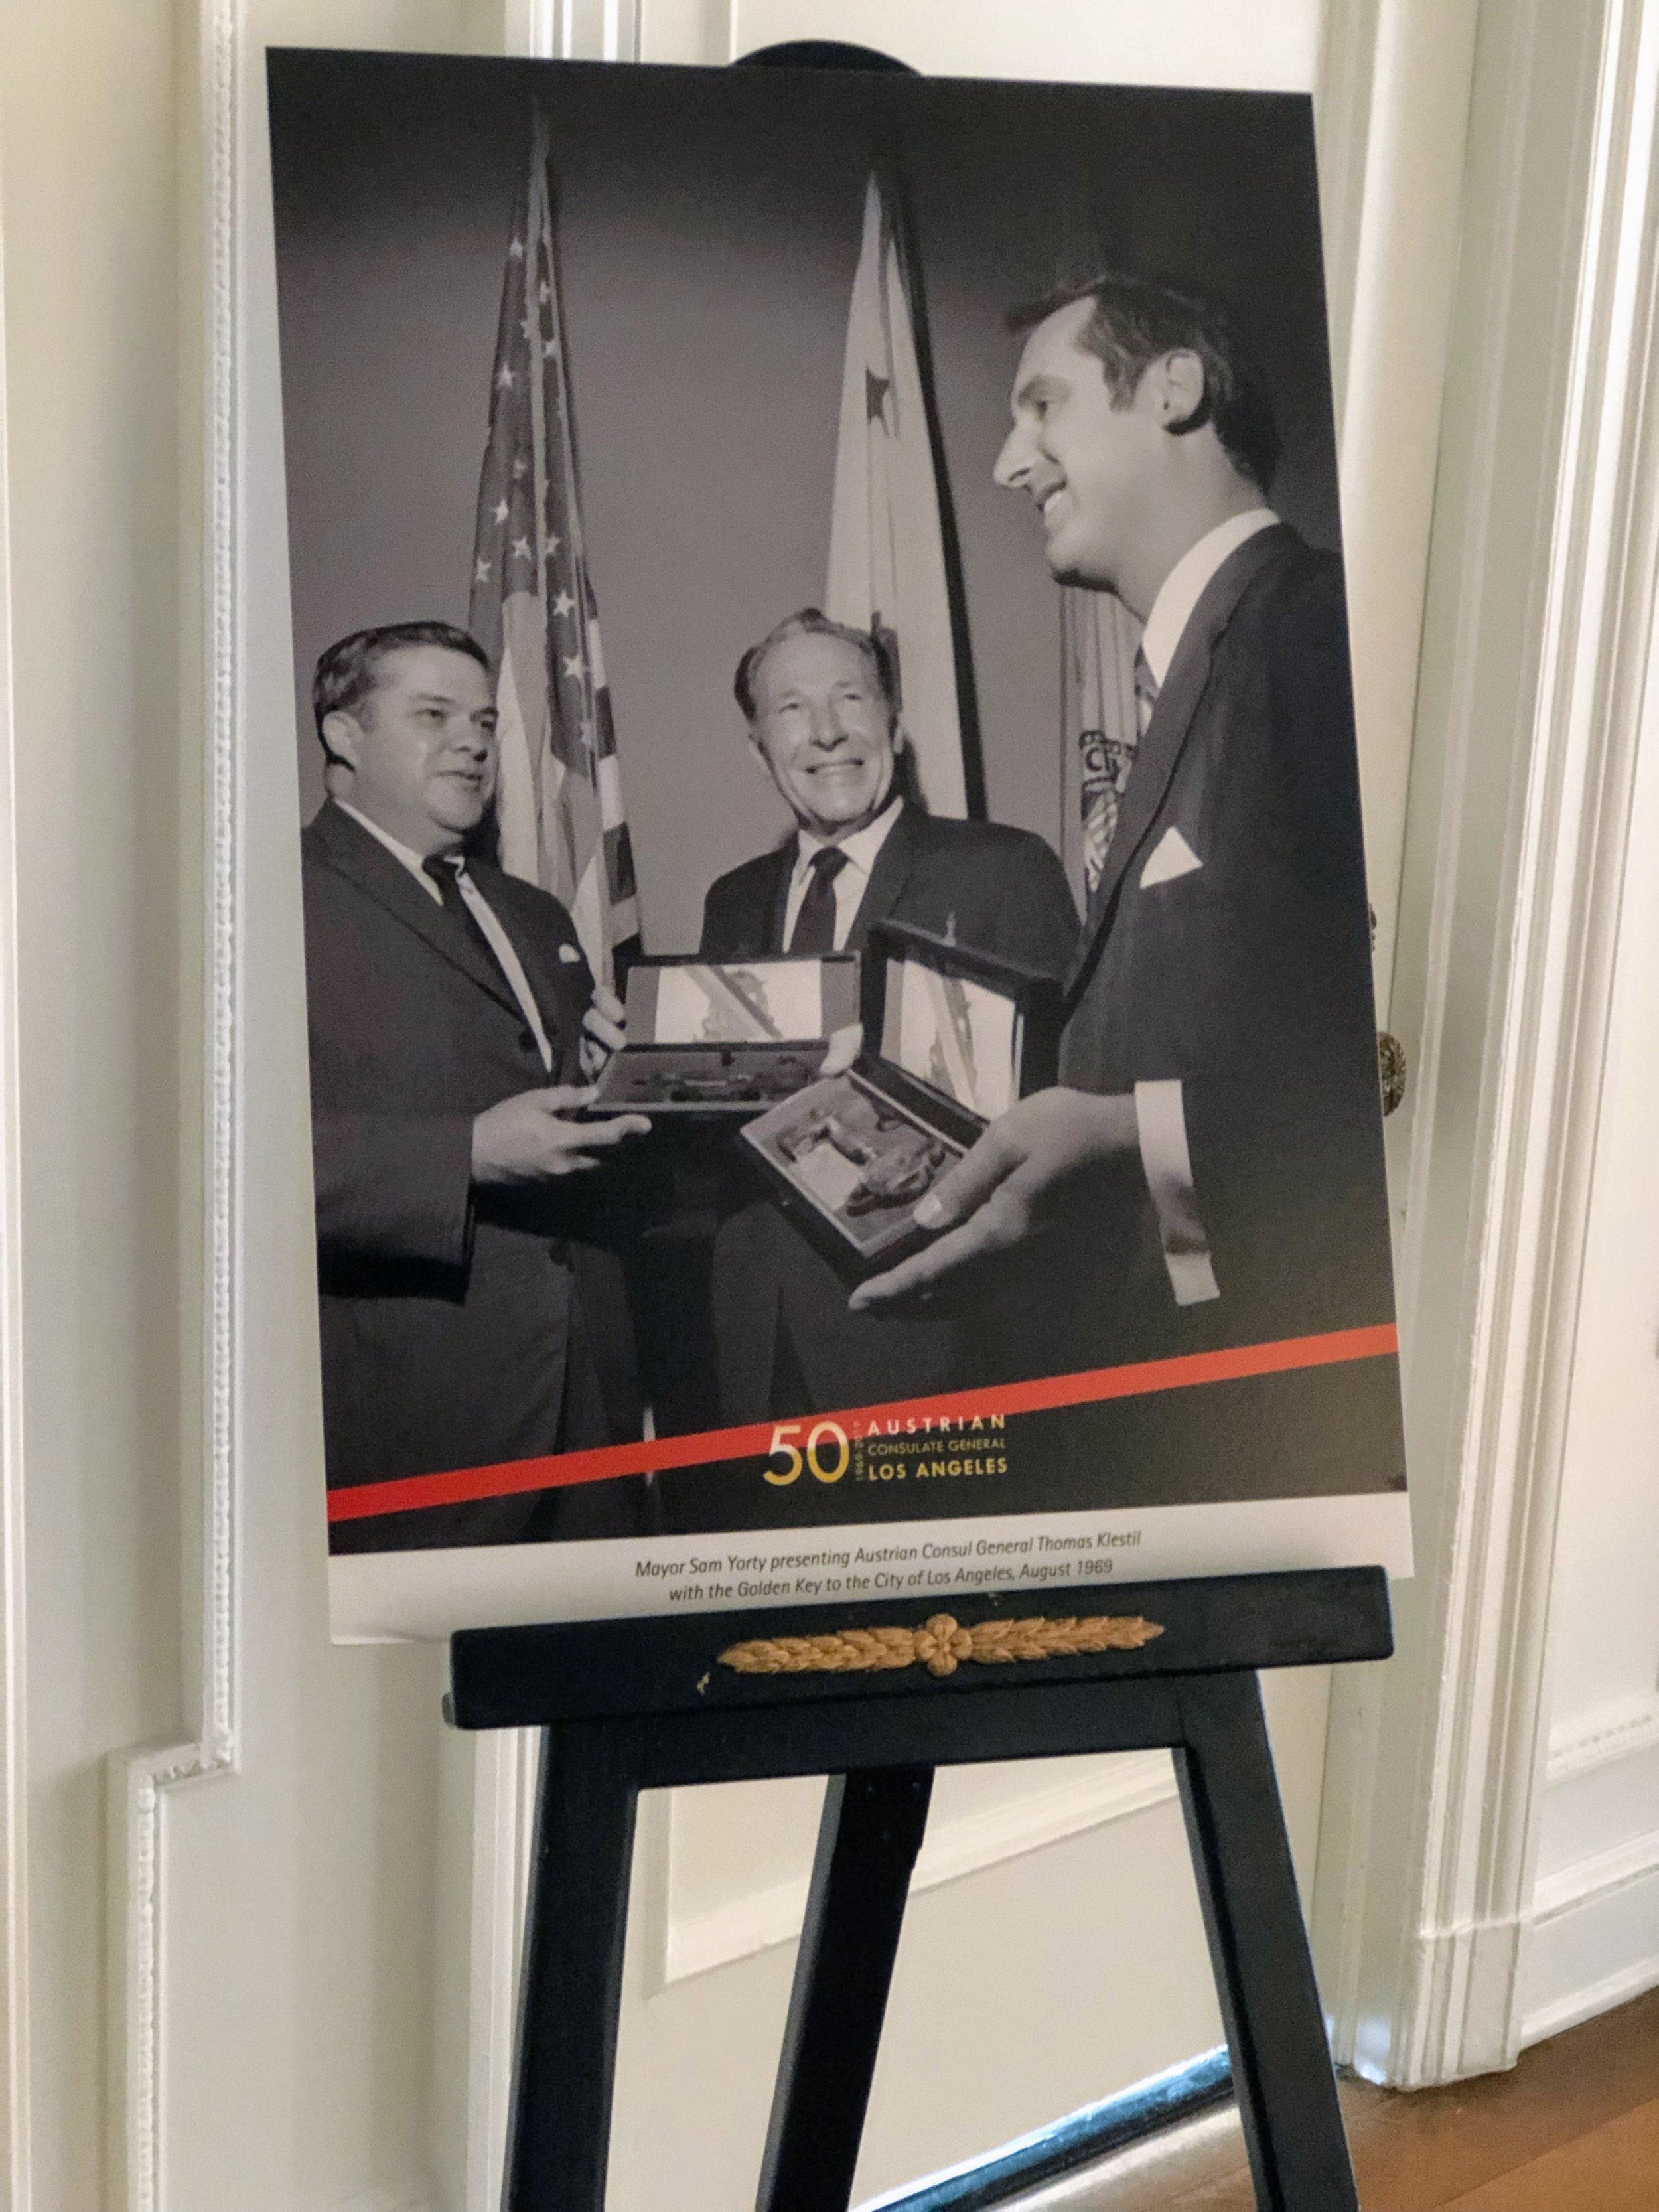 #throwback to August 1969: Sam Yorty, Mayor of Los Angeles presents Consul General of Austria Thomas Klestil with the Golden Key of the City of Los Angeles